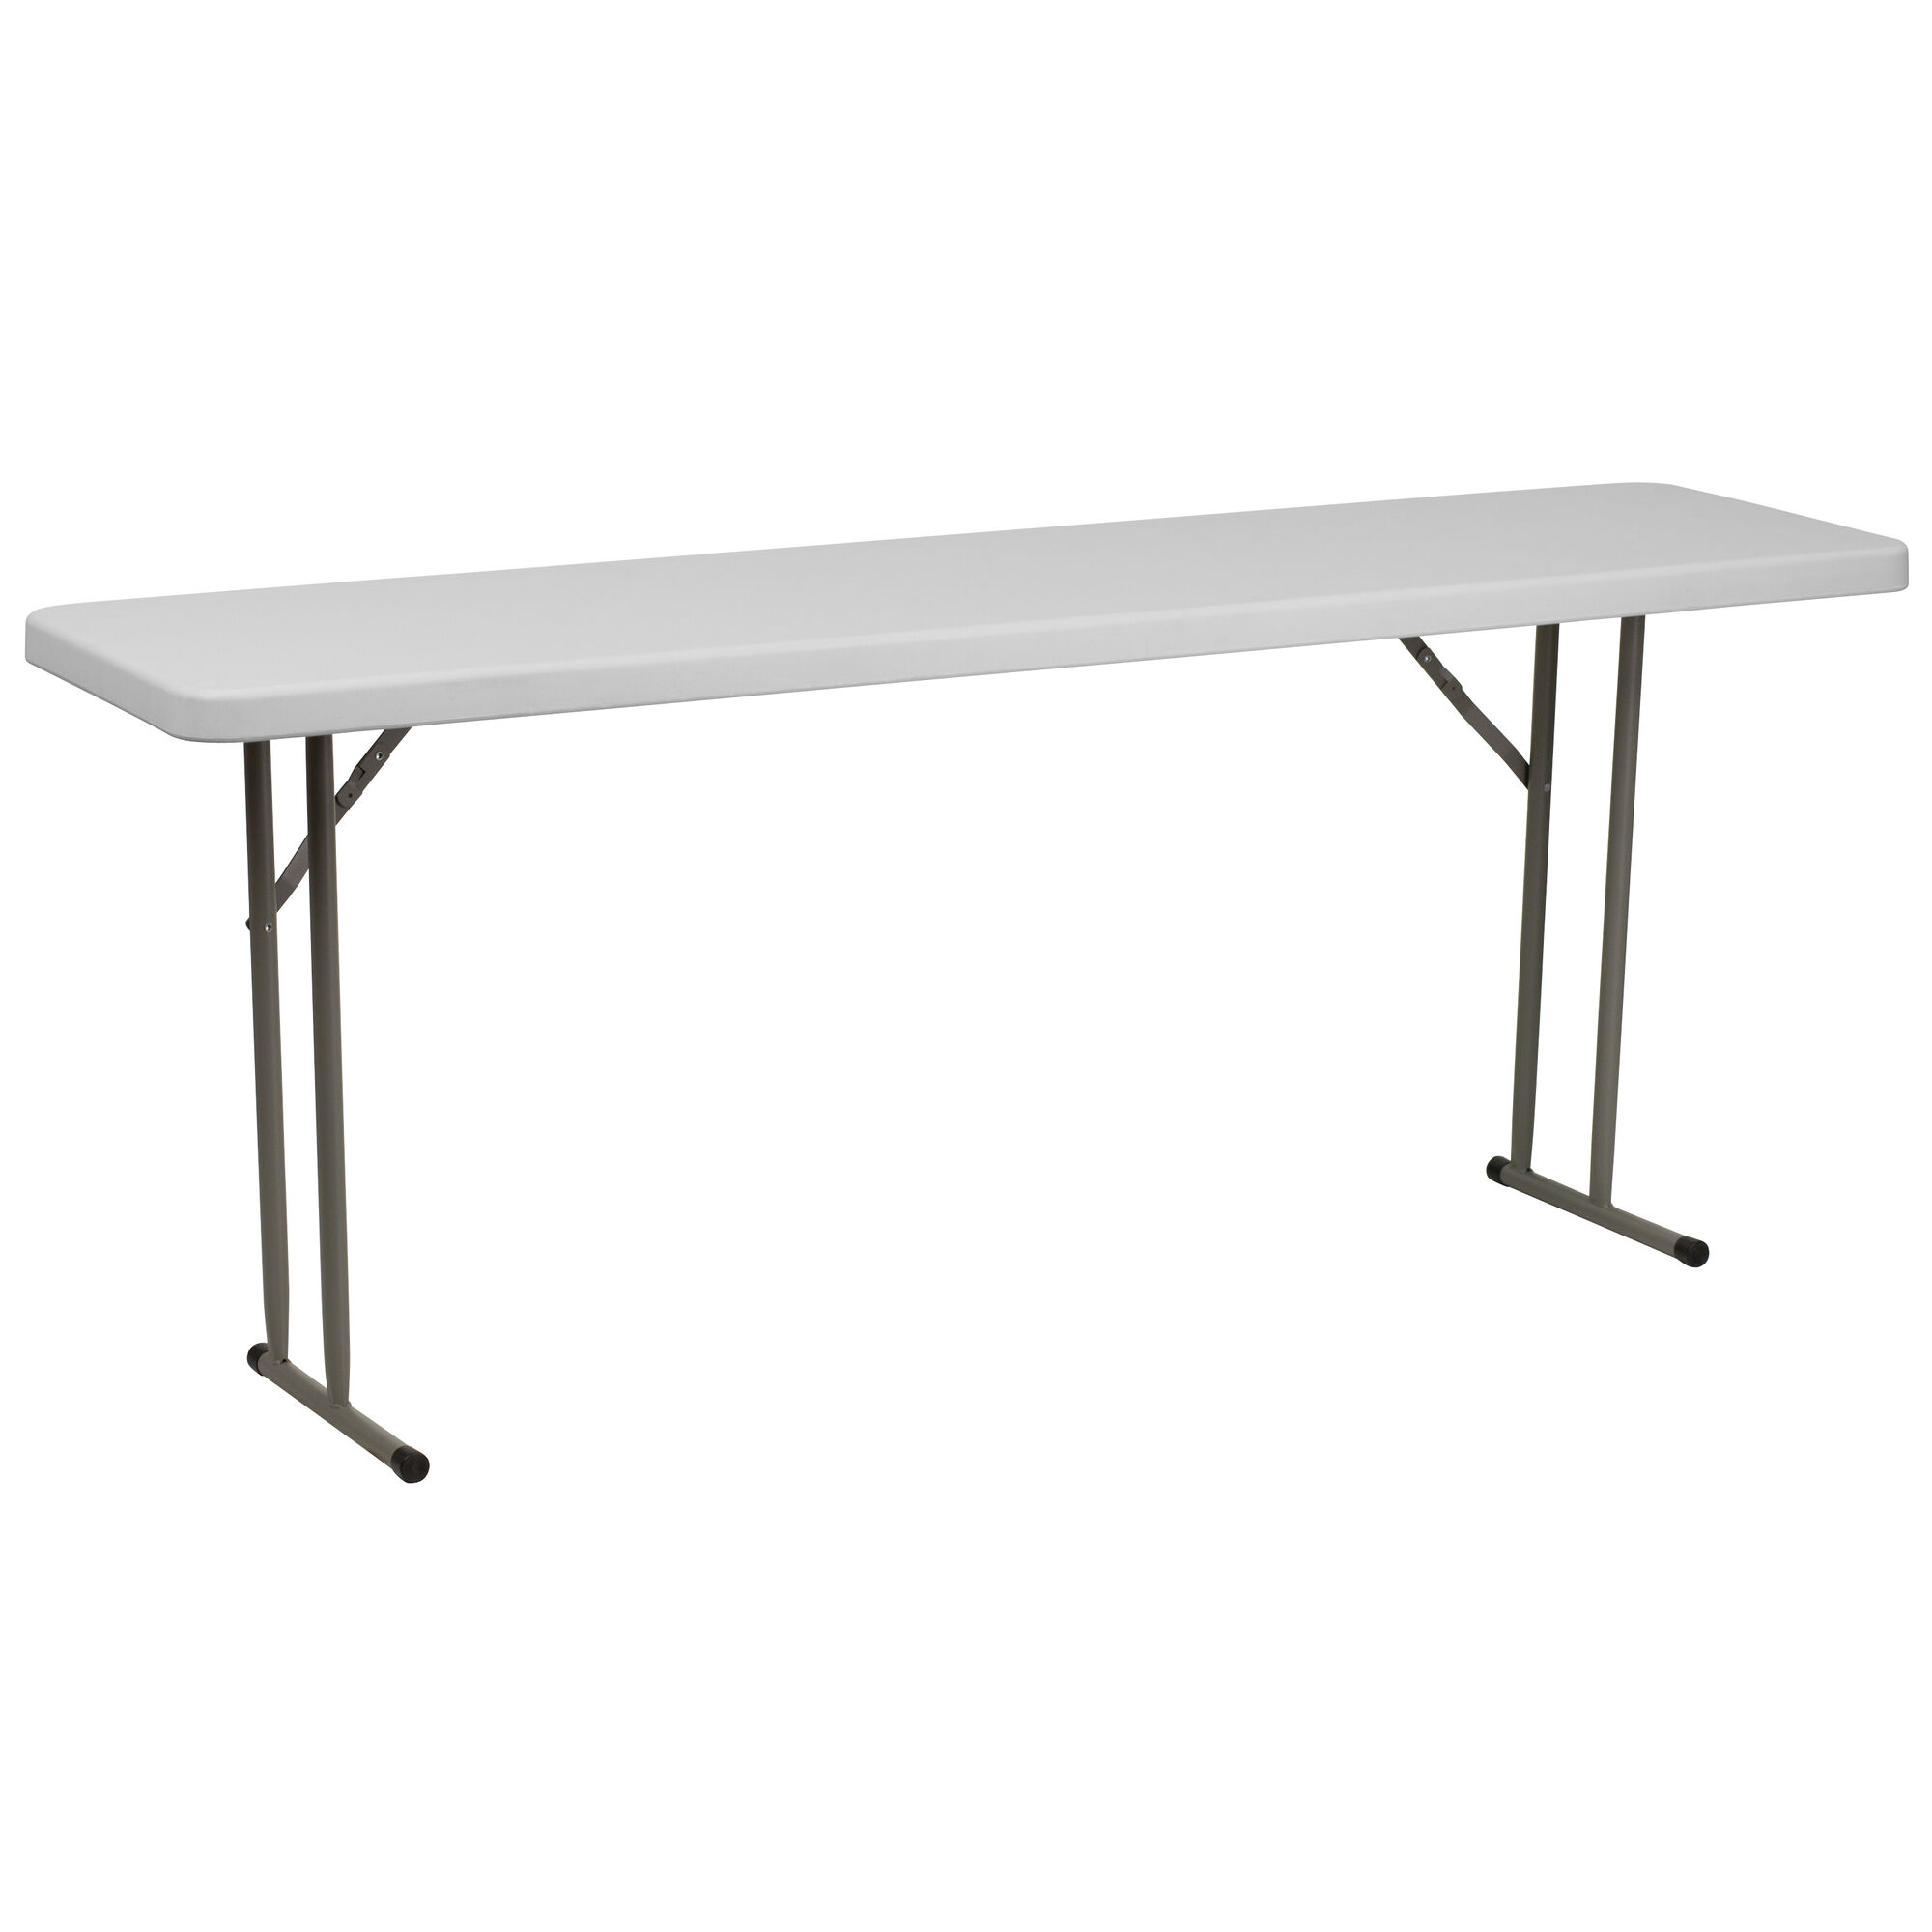 Miraculous 6 Foot Granite White Plastic Folding Training Table Squirreltailoven Fun Painted Chair Ideas Images Squirreltailovenorg